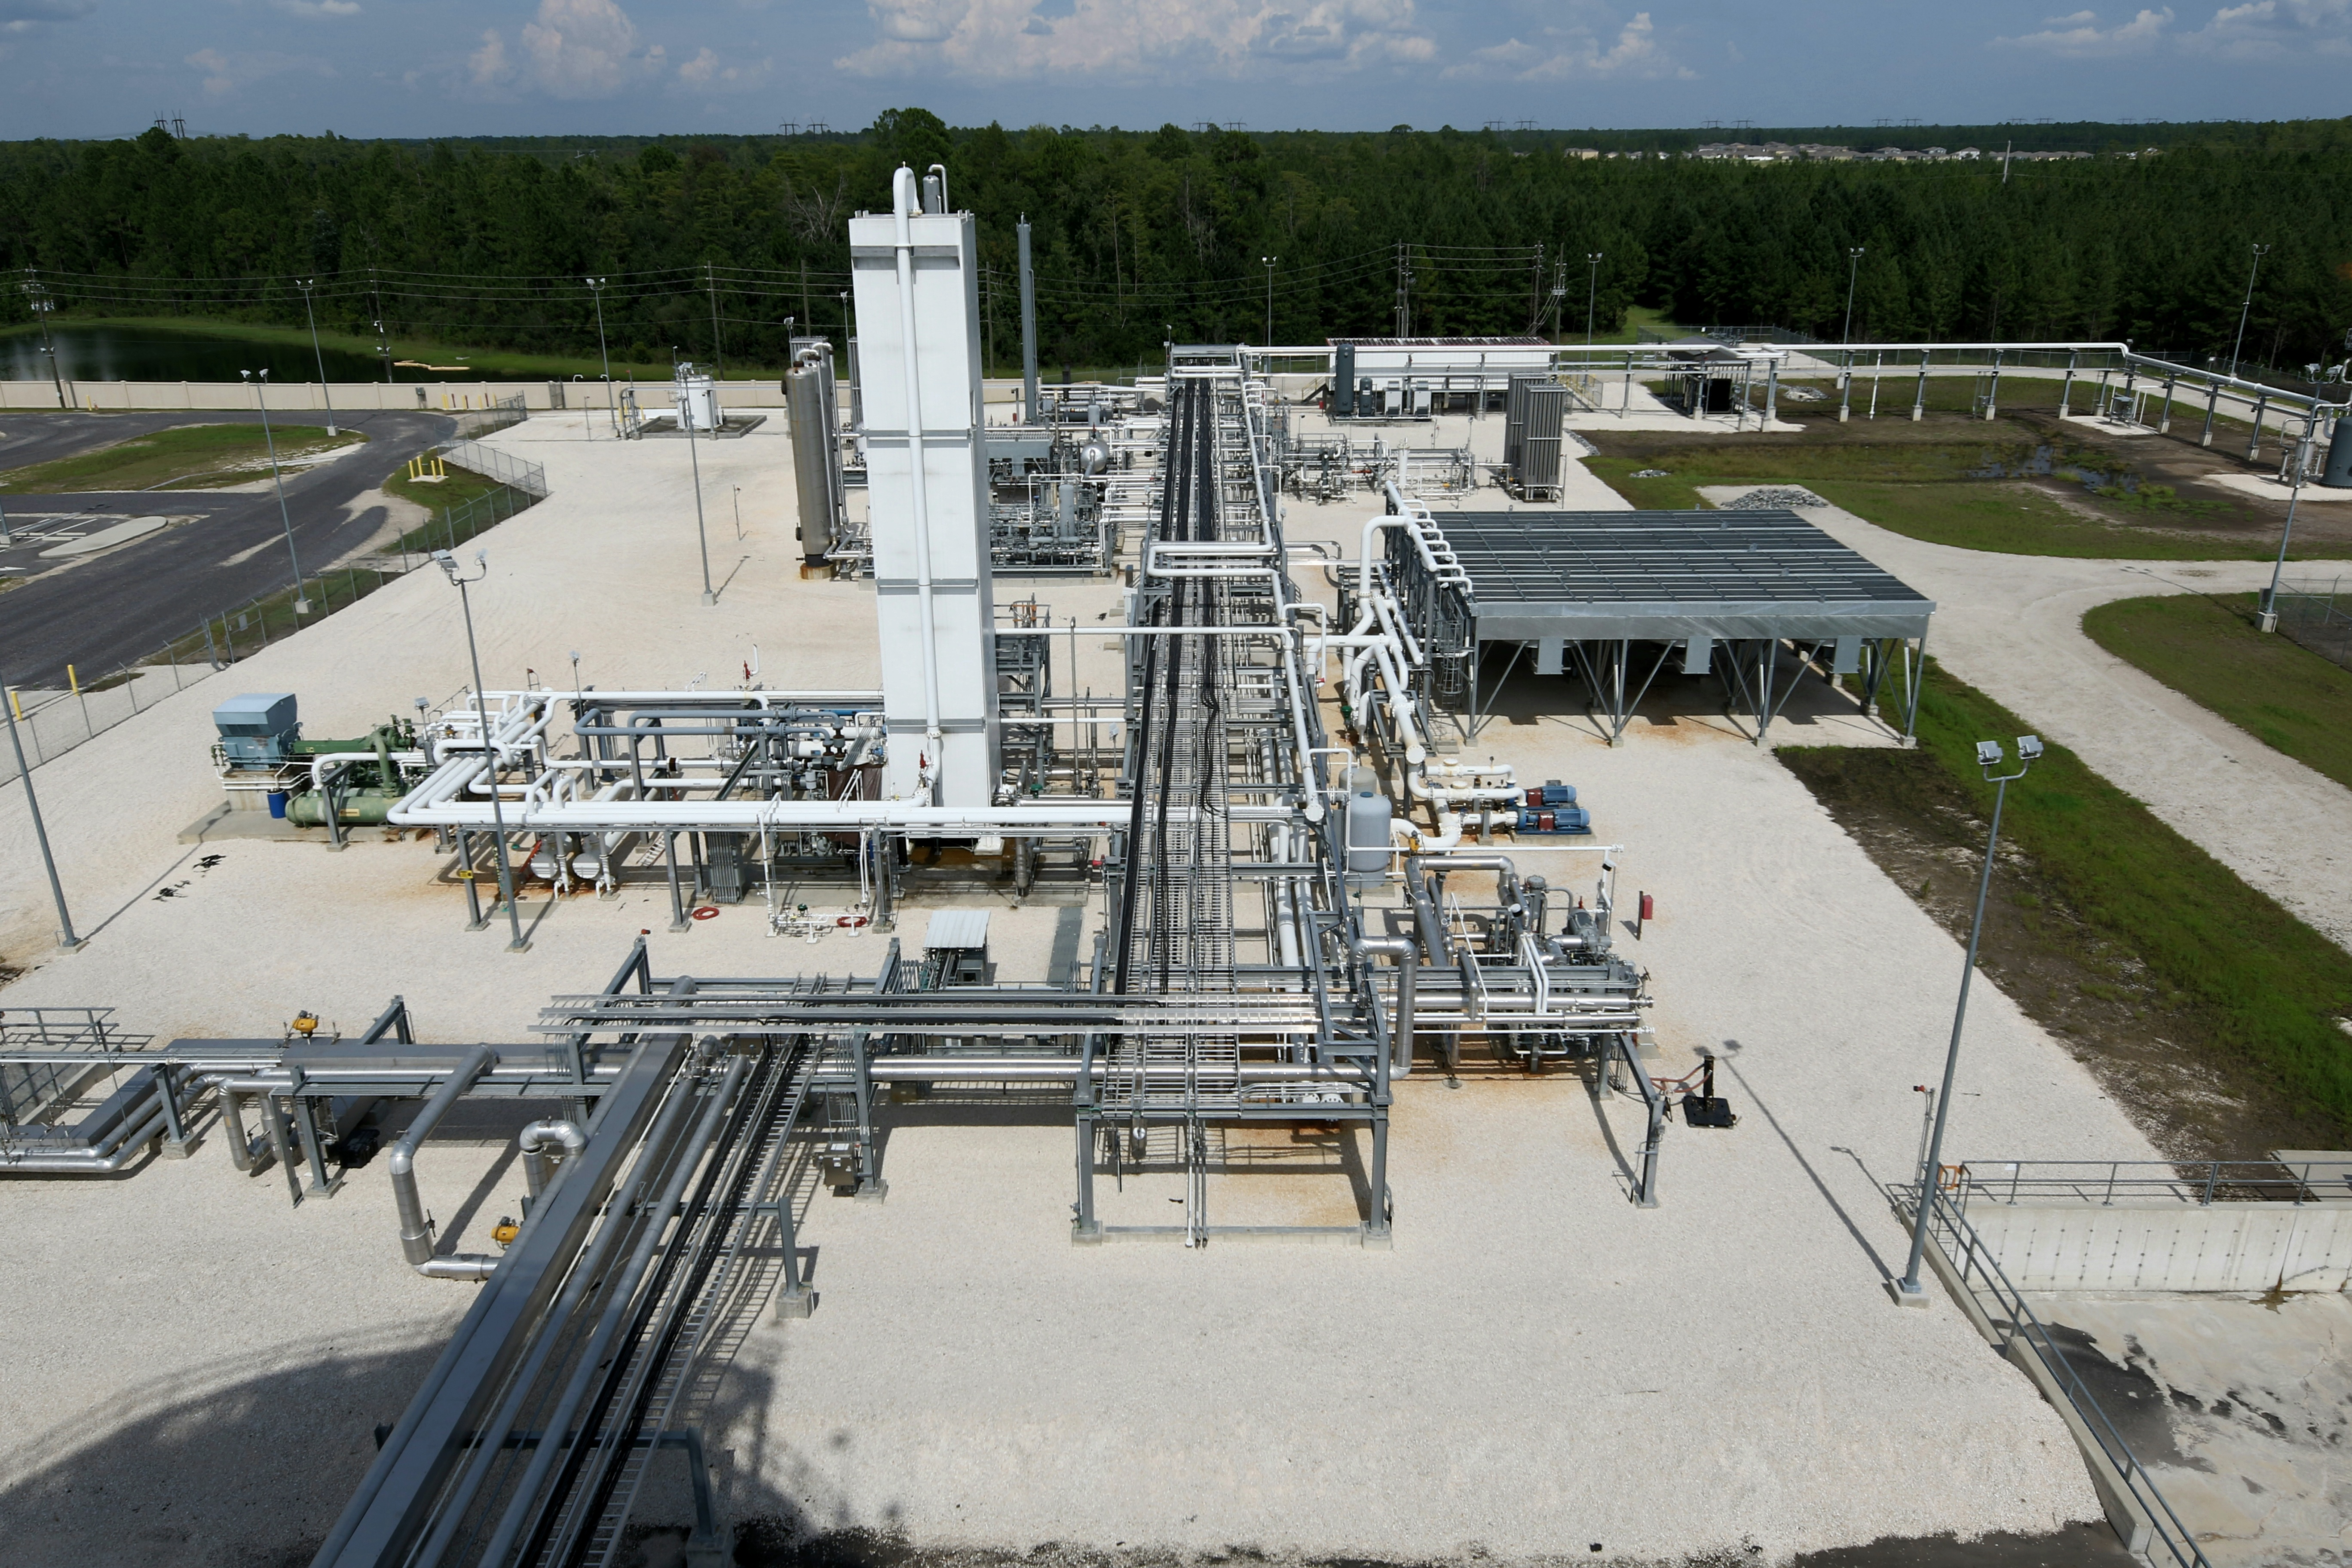 aerial image of a natural gas plant featuring a maze of intertwining chrome and white piping surrounding a tall white tower